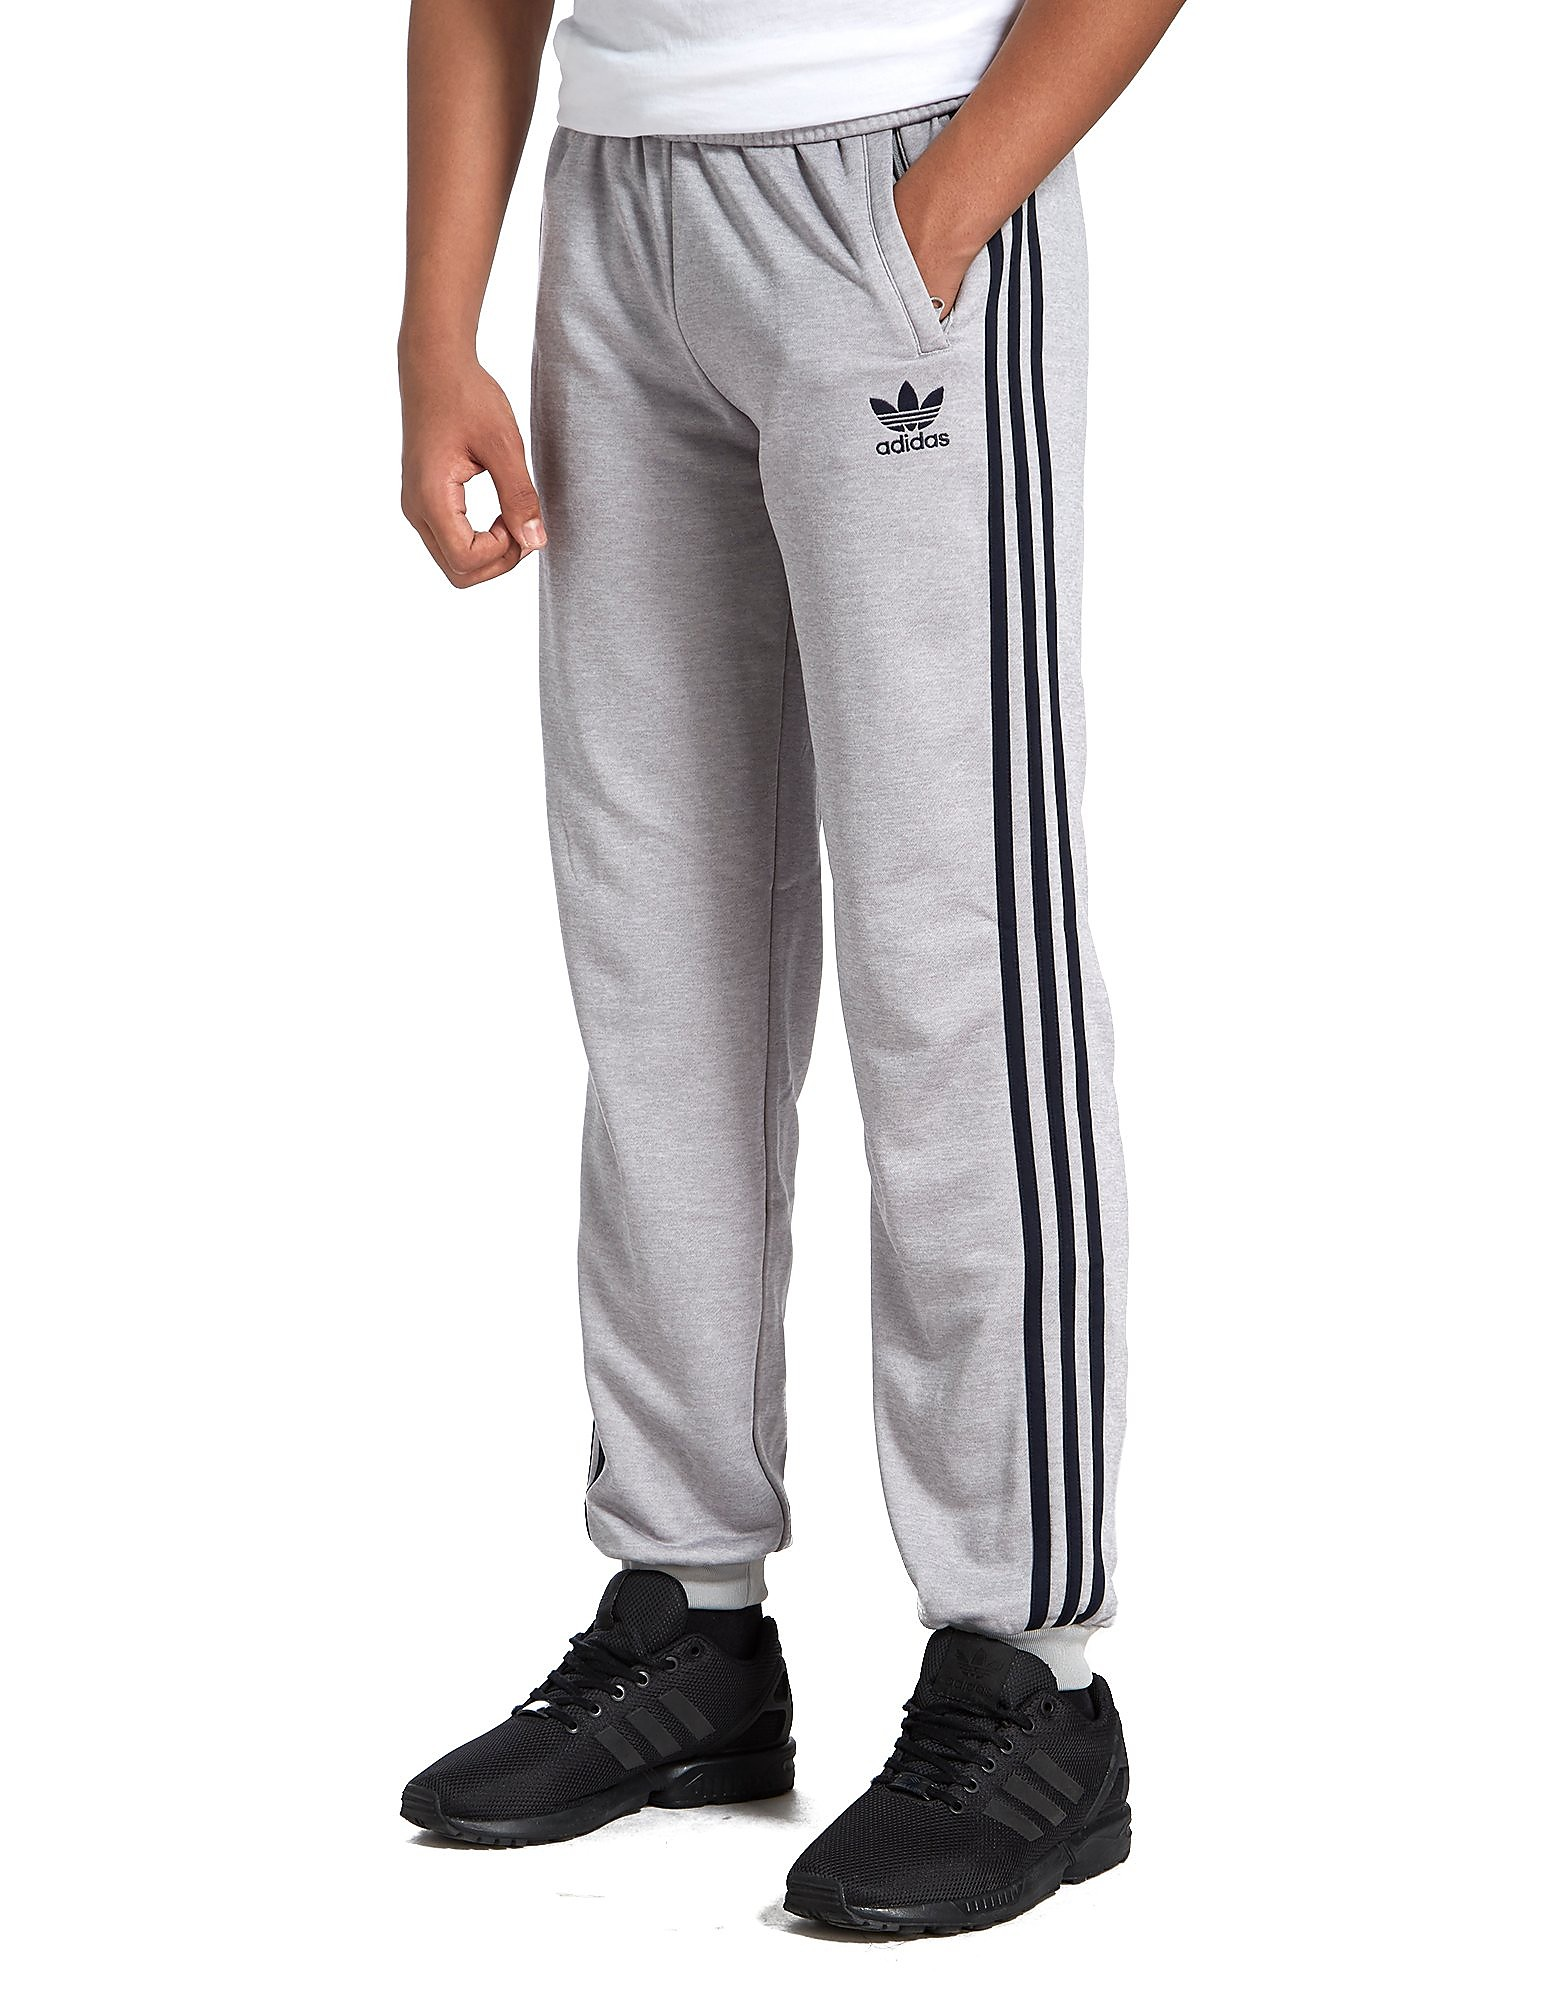 adidas Originals pantalón de chándal Superstar júnior